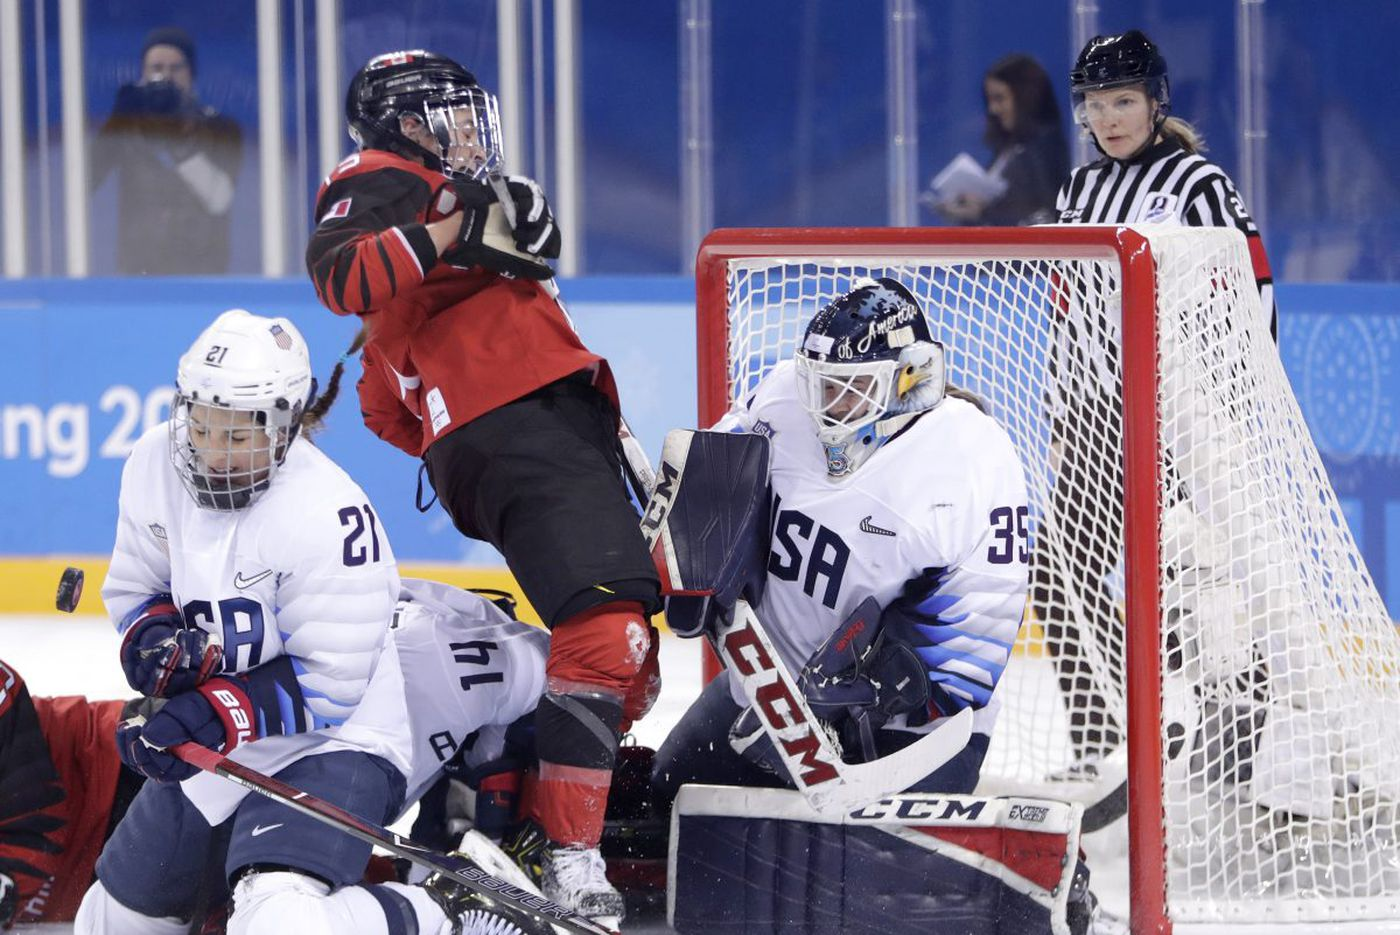 U.S.-Canada Olympics women's hockey gold medal game has local fans on edge